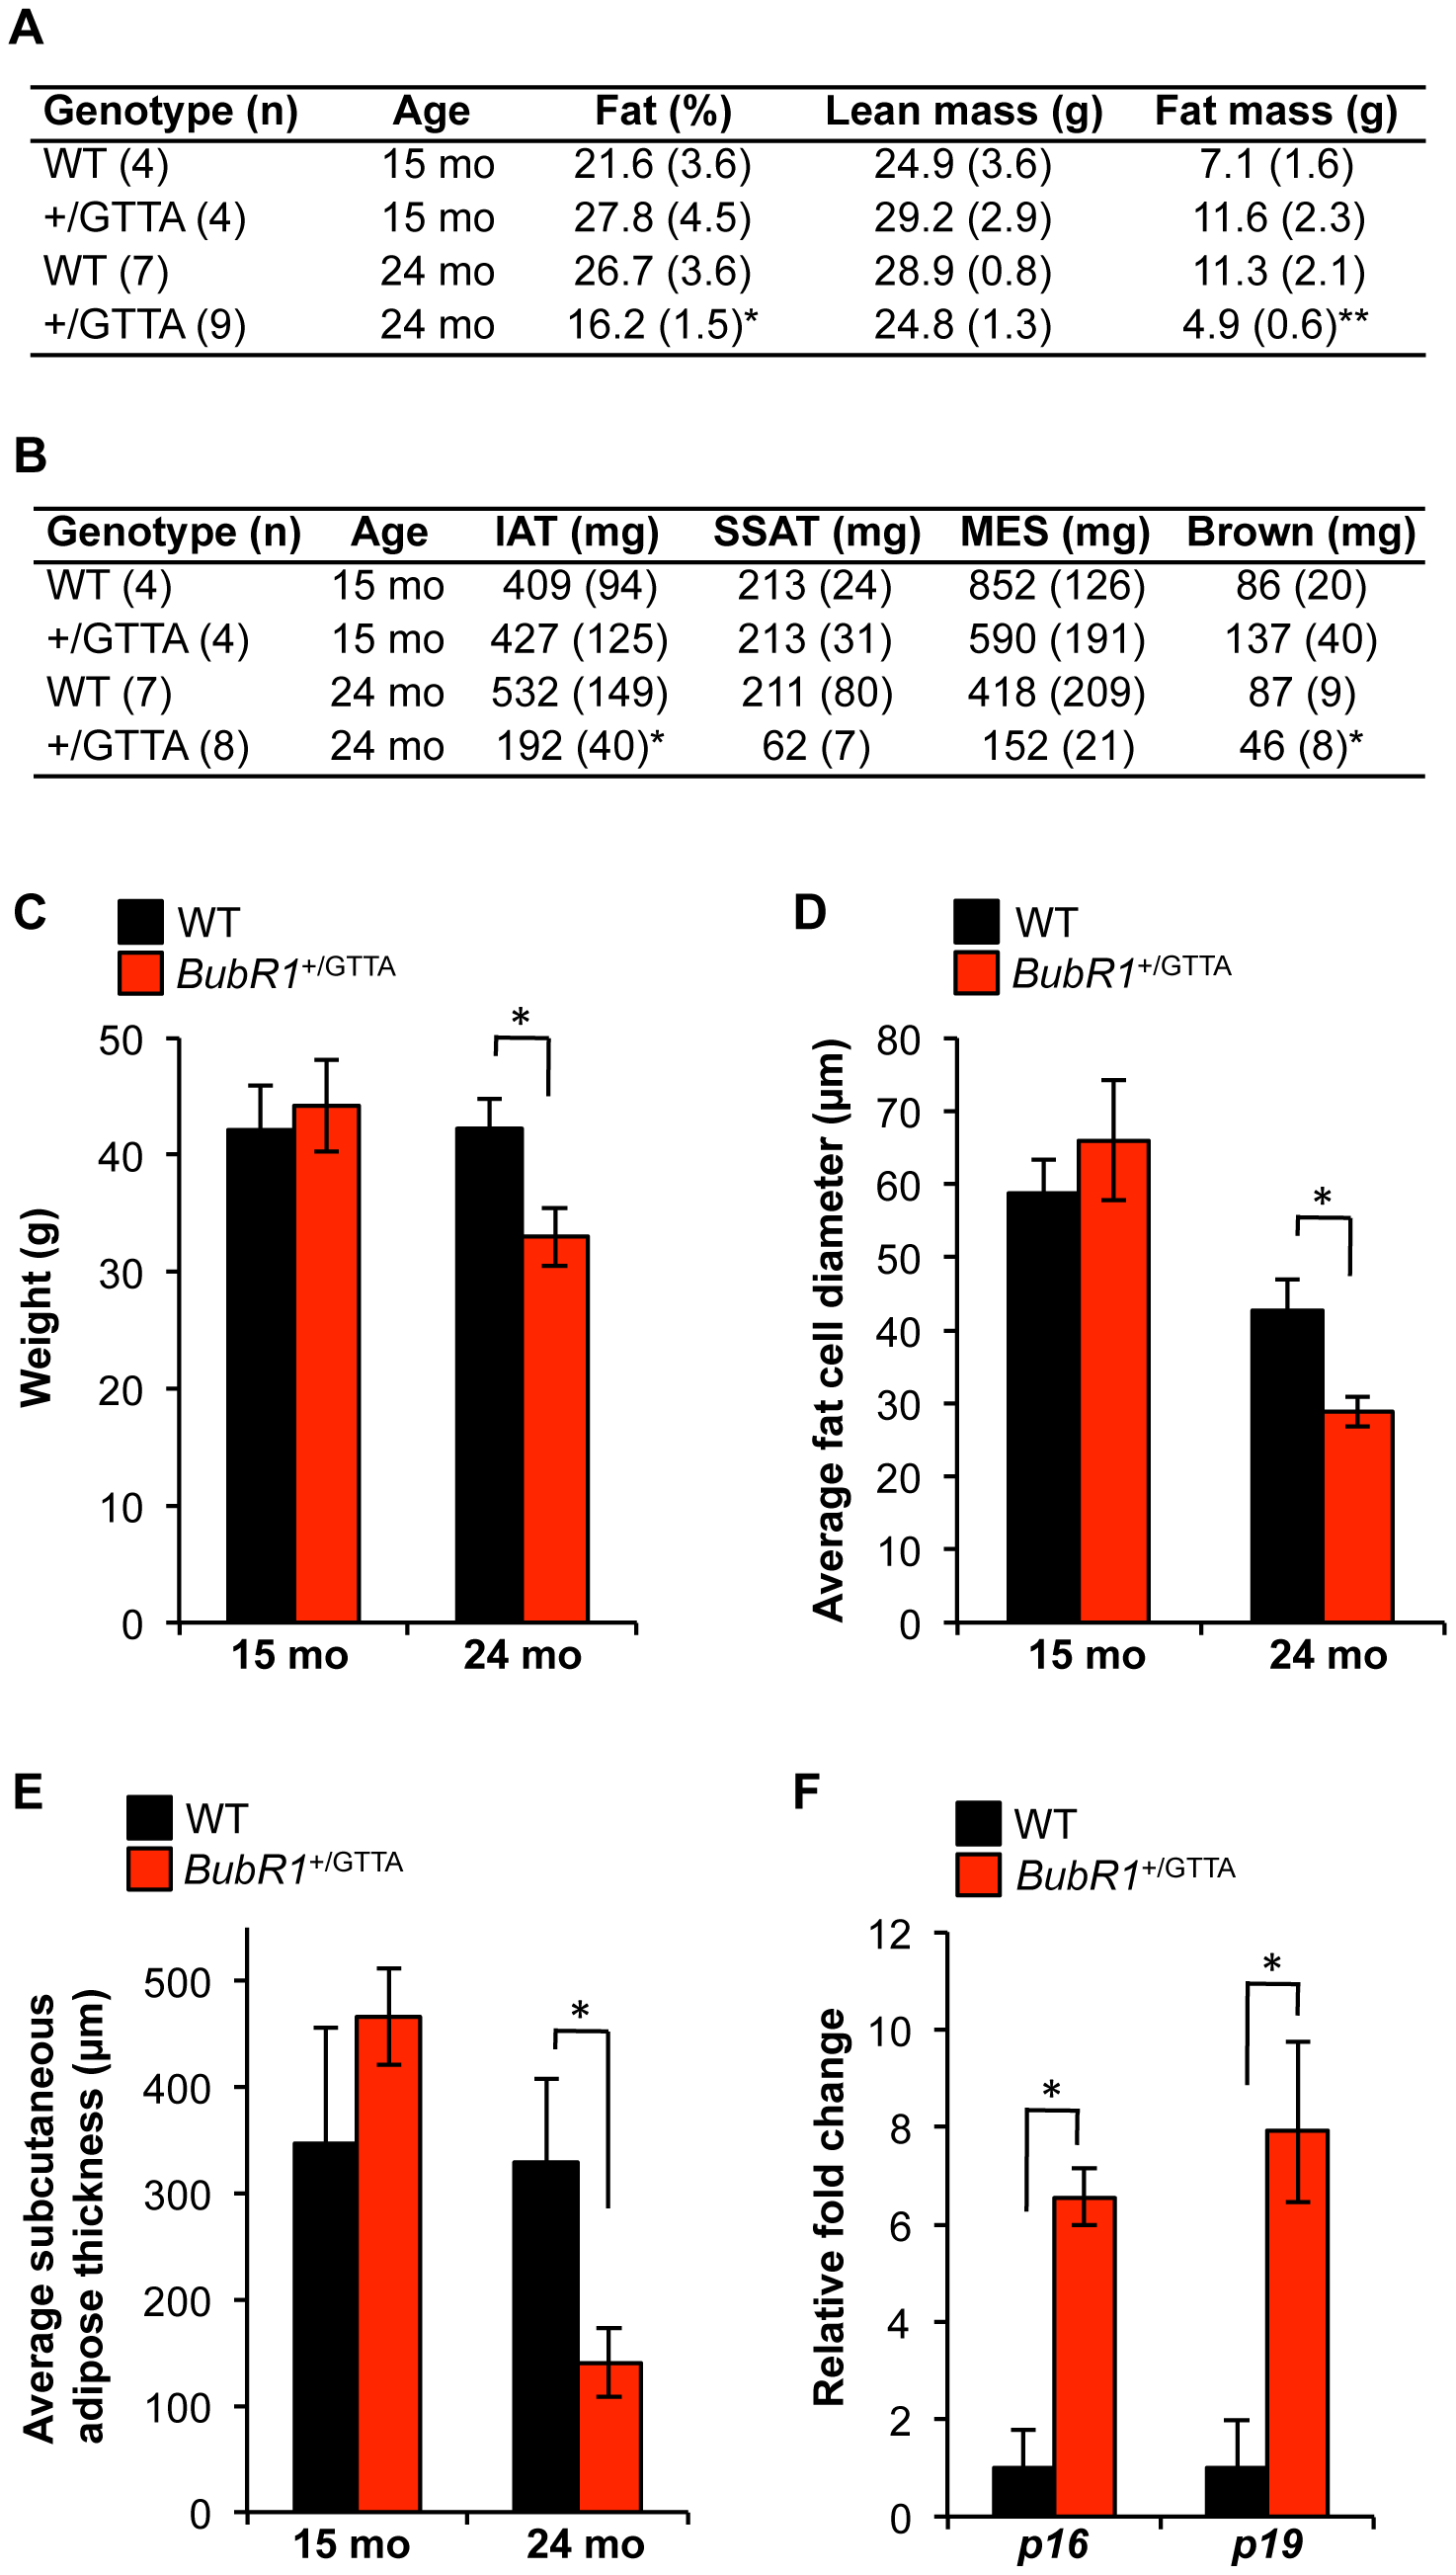 Age-related fat loss in <i>BubR1</i><sup>+/GTTA</sup> mice.